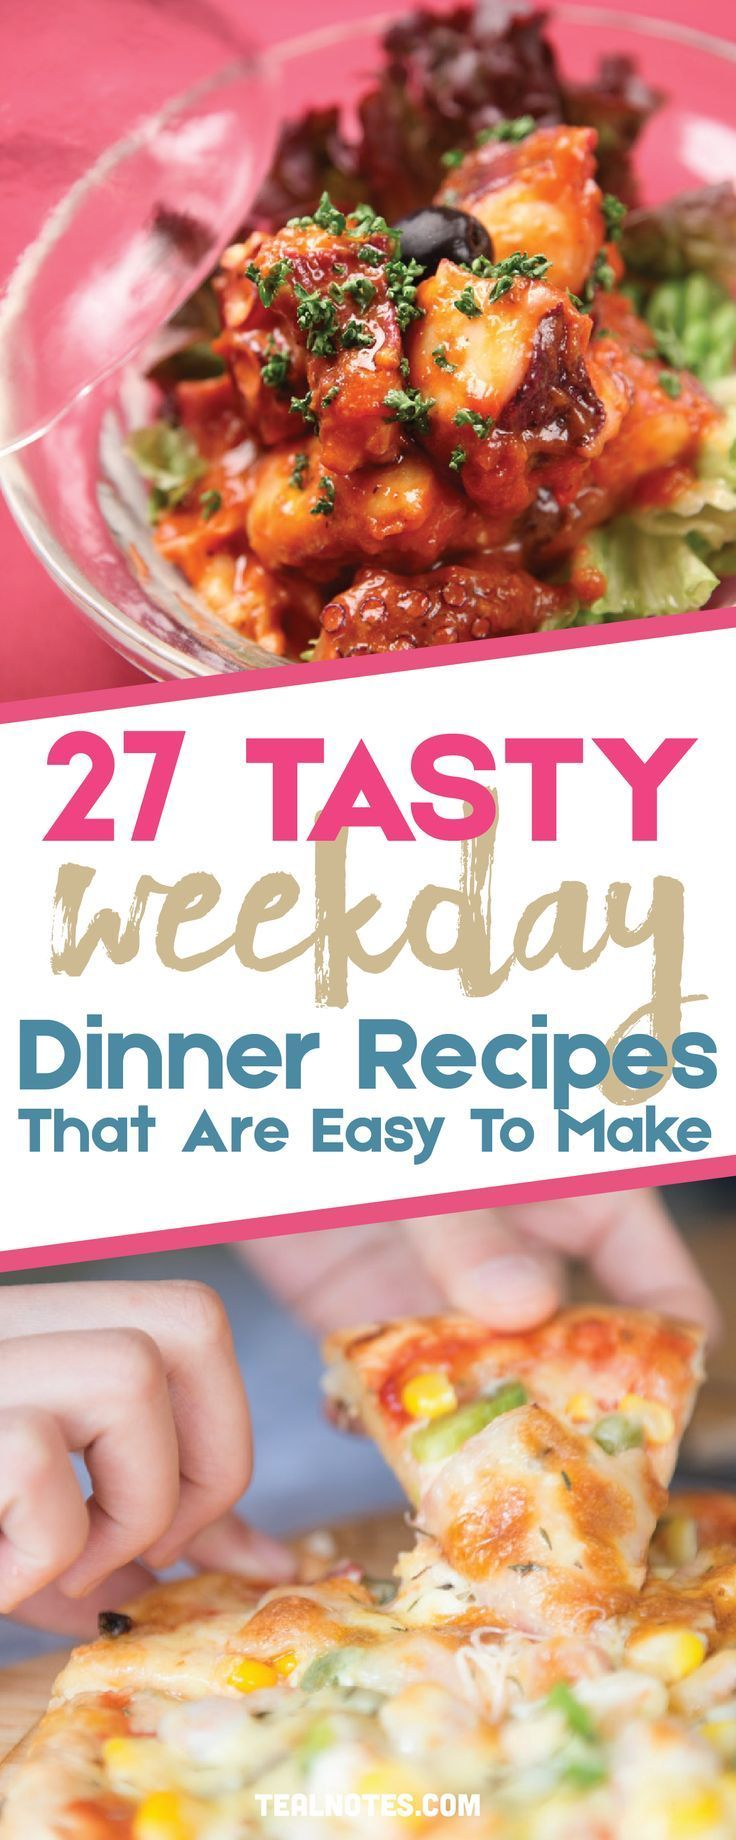 27 Quick Dinner Ideas You Can Make In 25 Minutes Or Less images